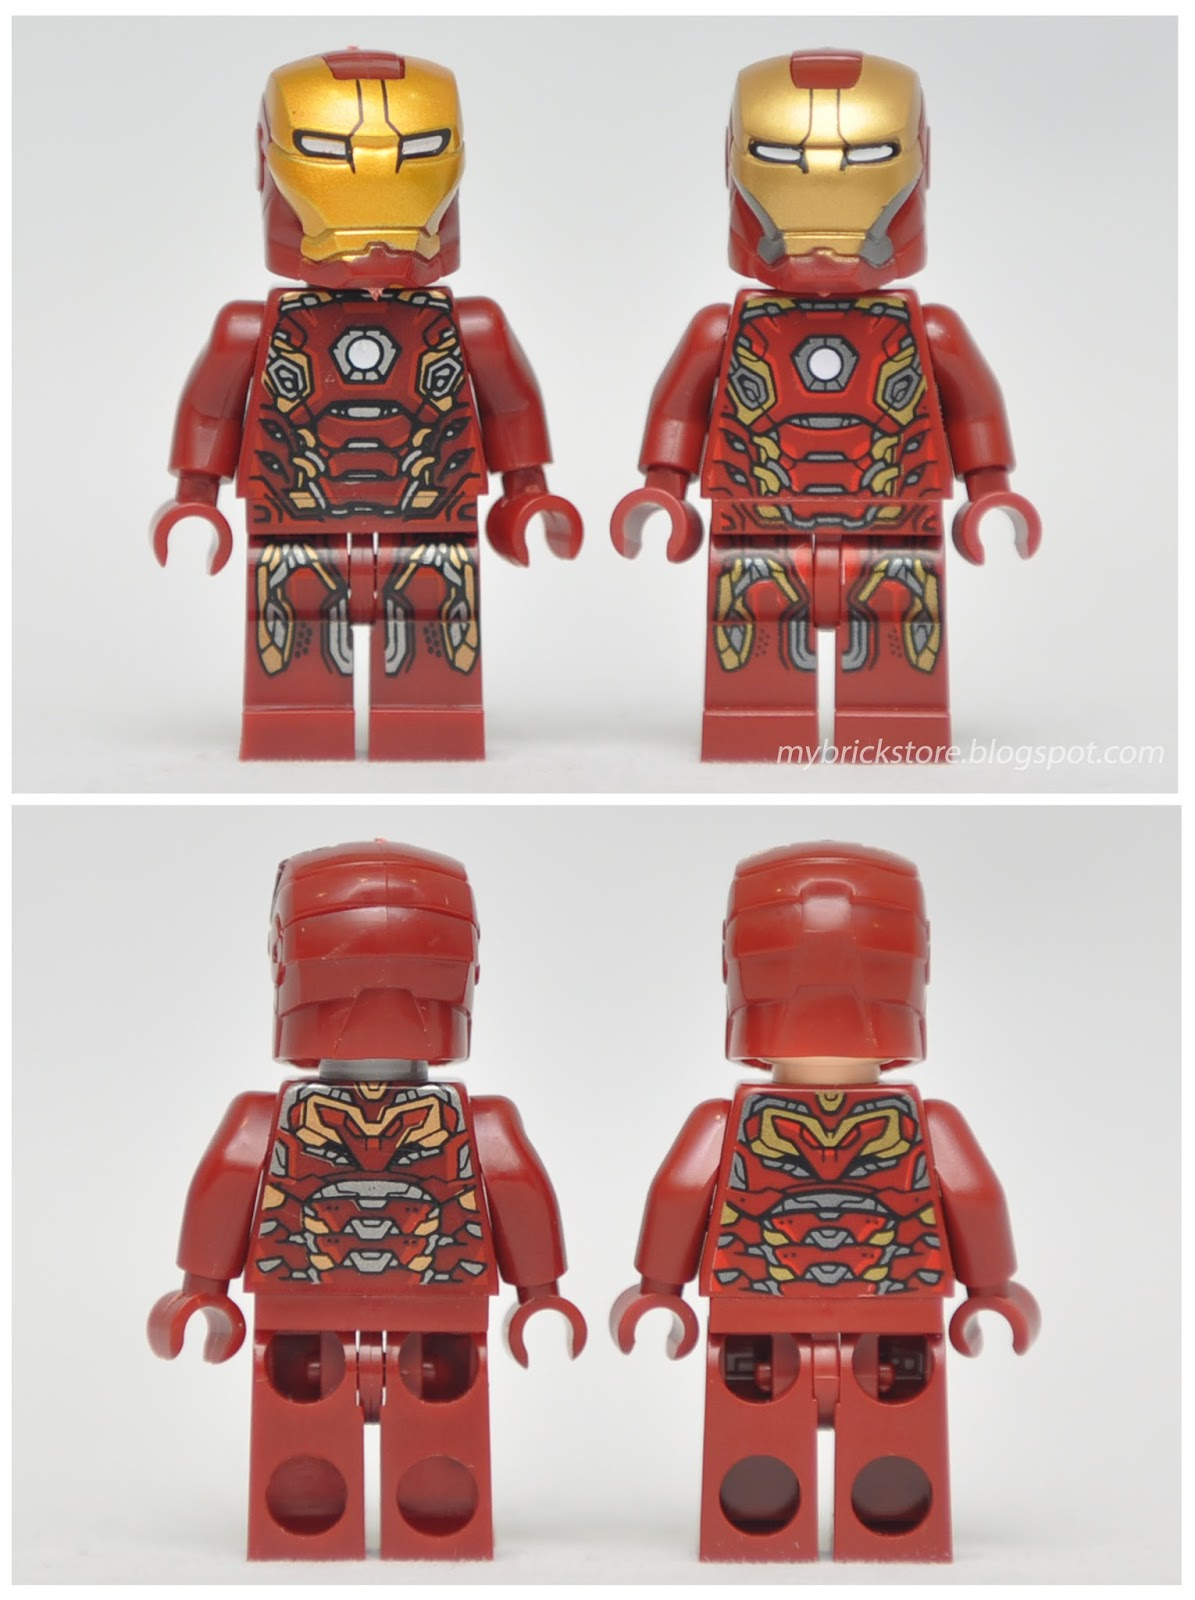 My brick store lego iron man minifigures by duo le pin - Lego iron man 3 ...